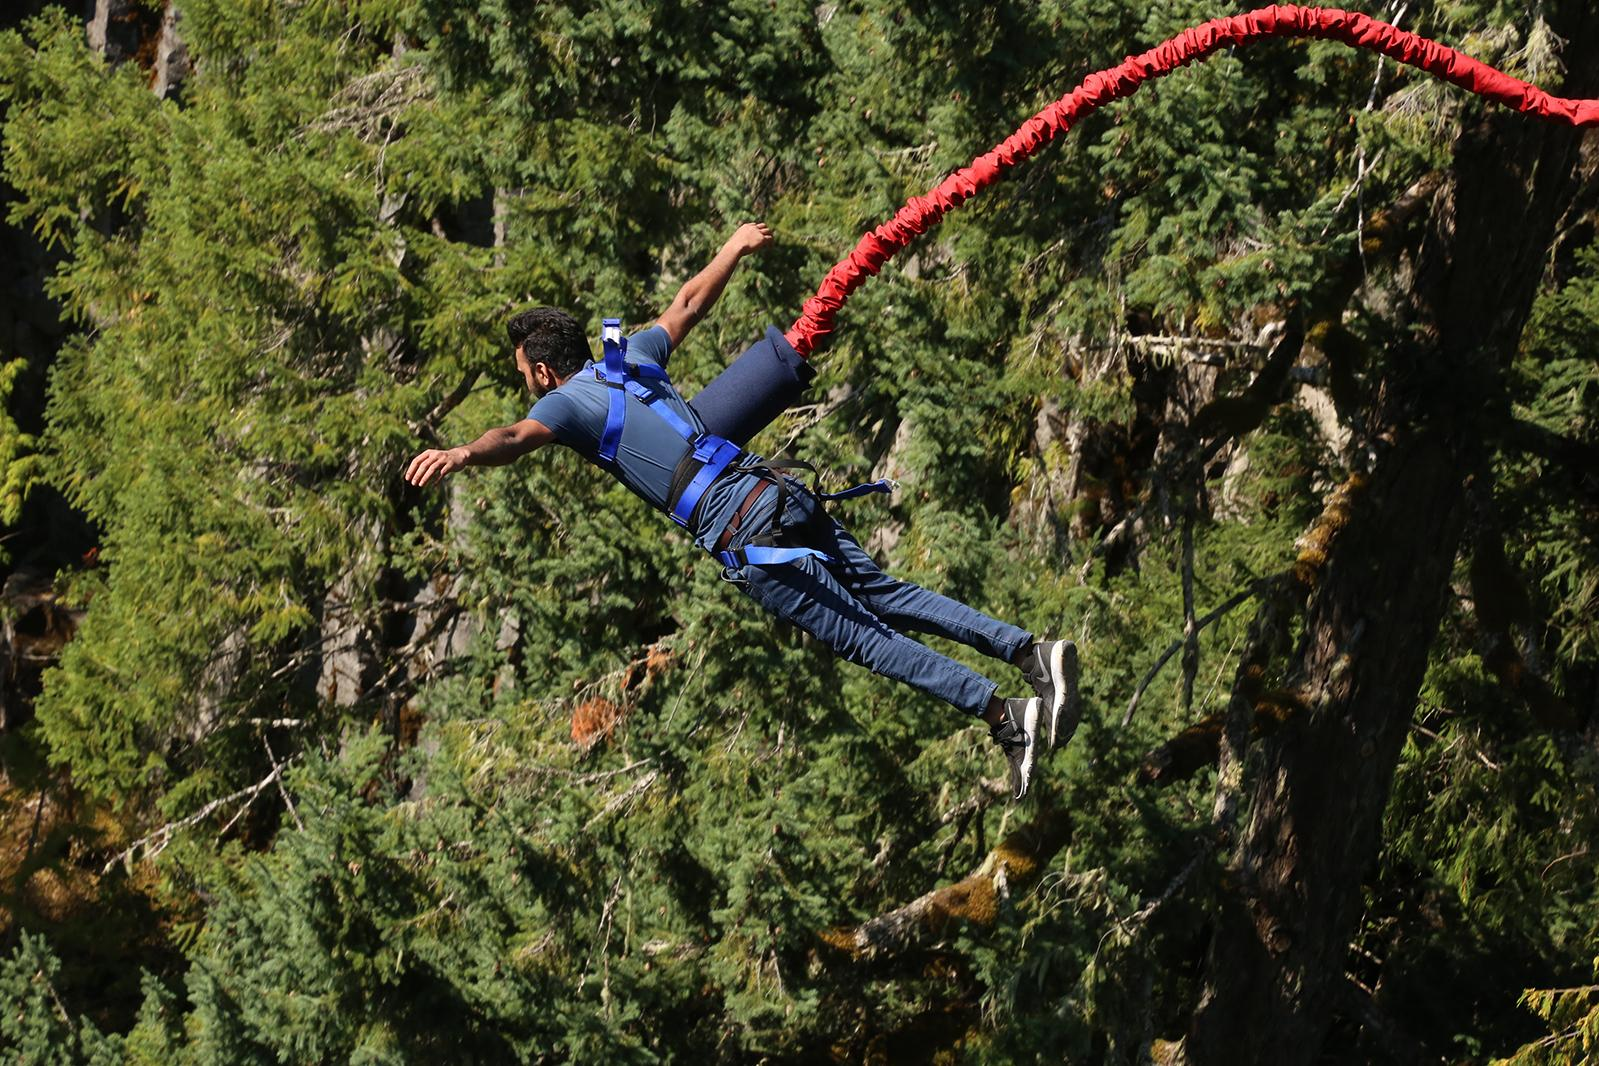 Bungee jumping in Croatia: 3 top locations to get the adrenaline up